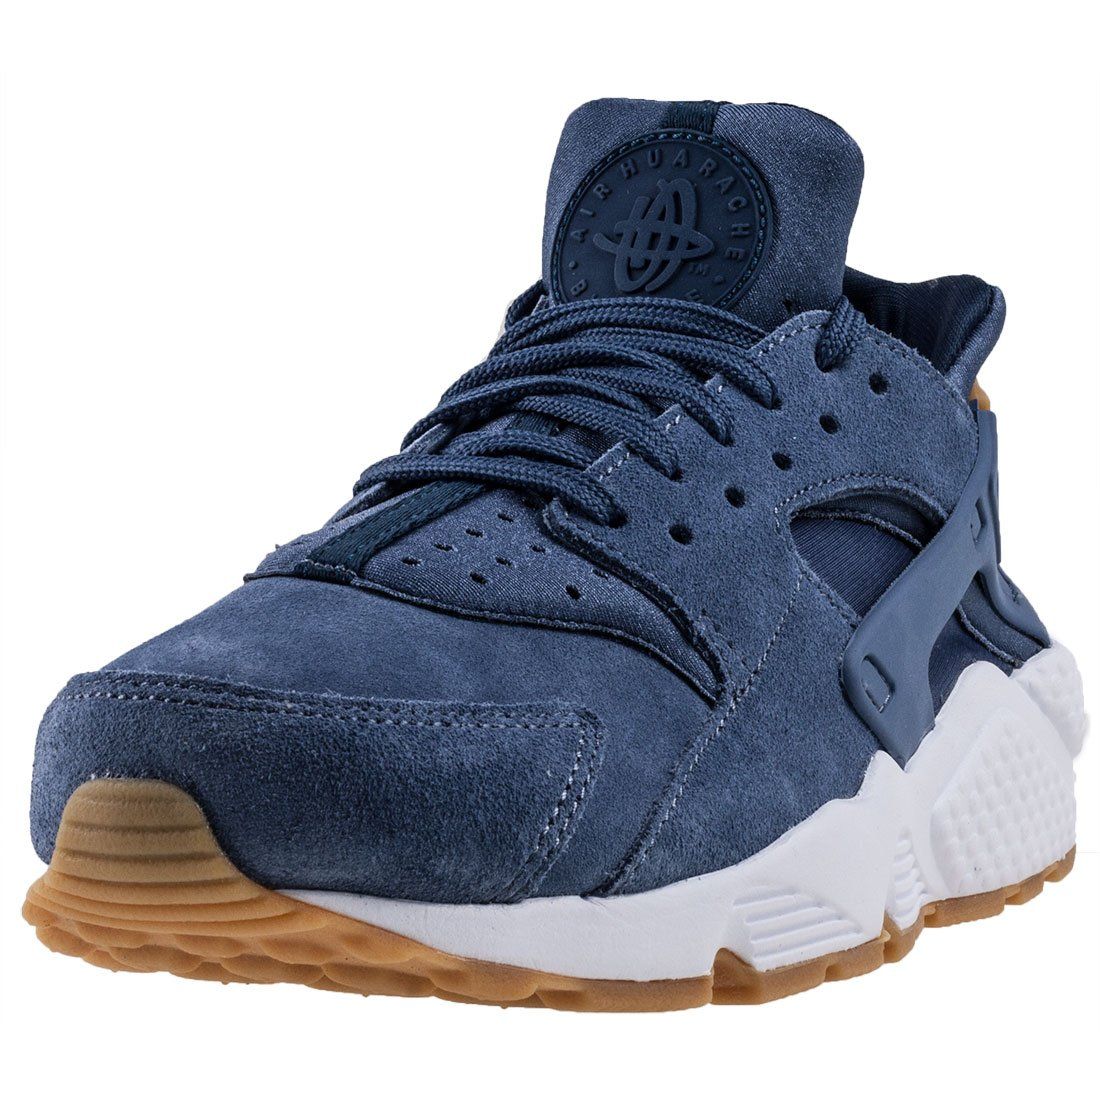 new products 83909 b8489 Nike Air Huarache Run Suede Womens Shoes Diffused Blue aa0524-400 (9.5 B(M)  US)